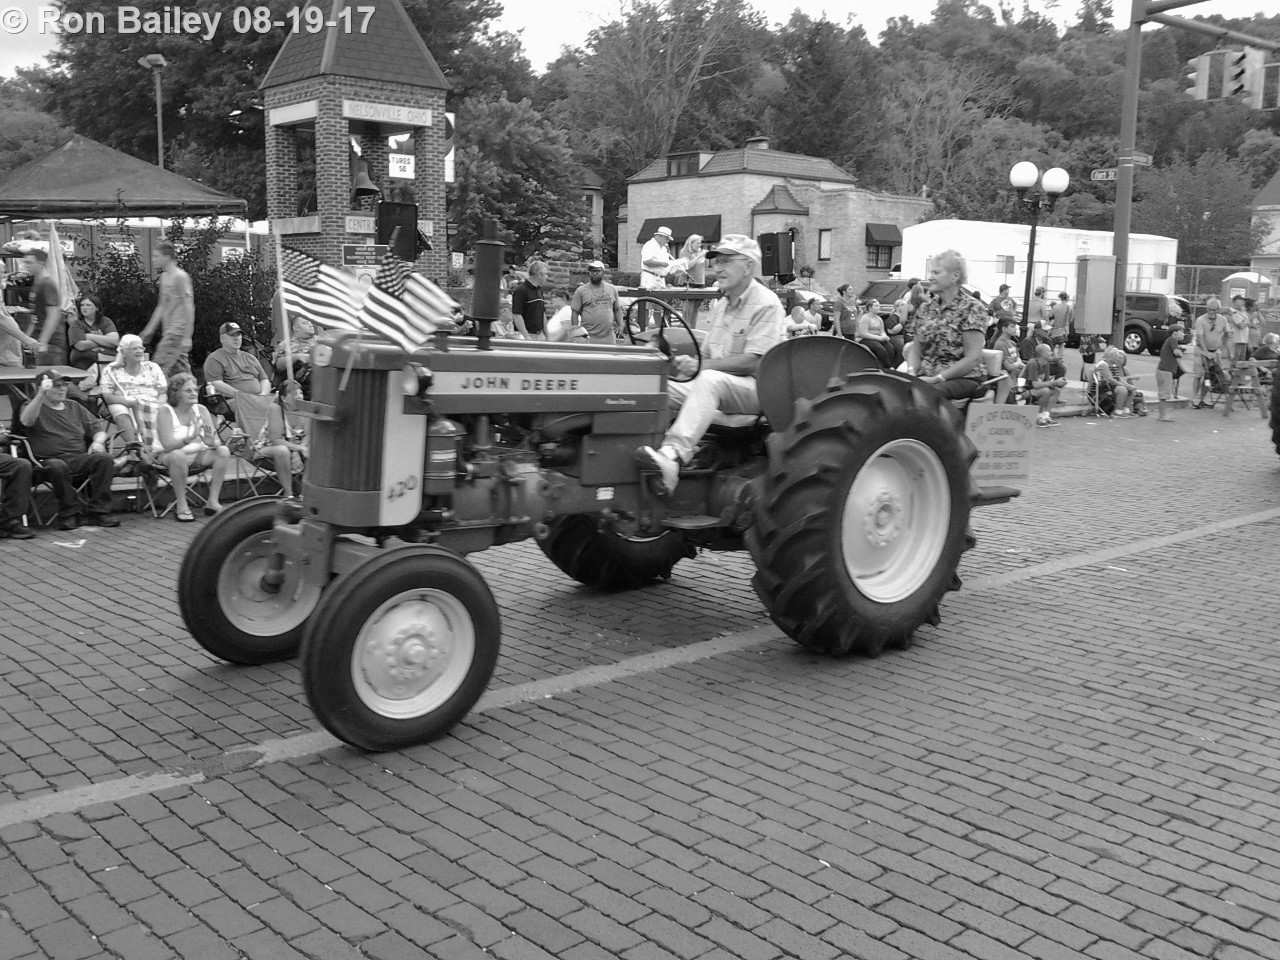 Parade of the Hills 2017 - Grand Parade BW 8-19-2017 7-15-15 PM